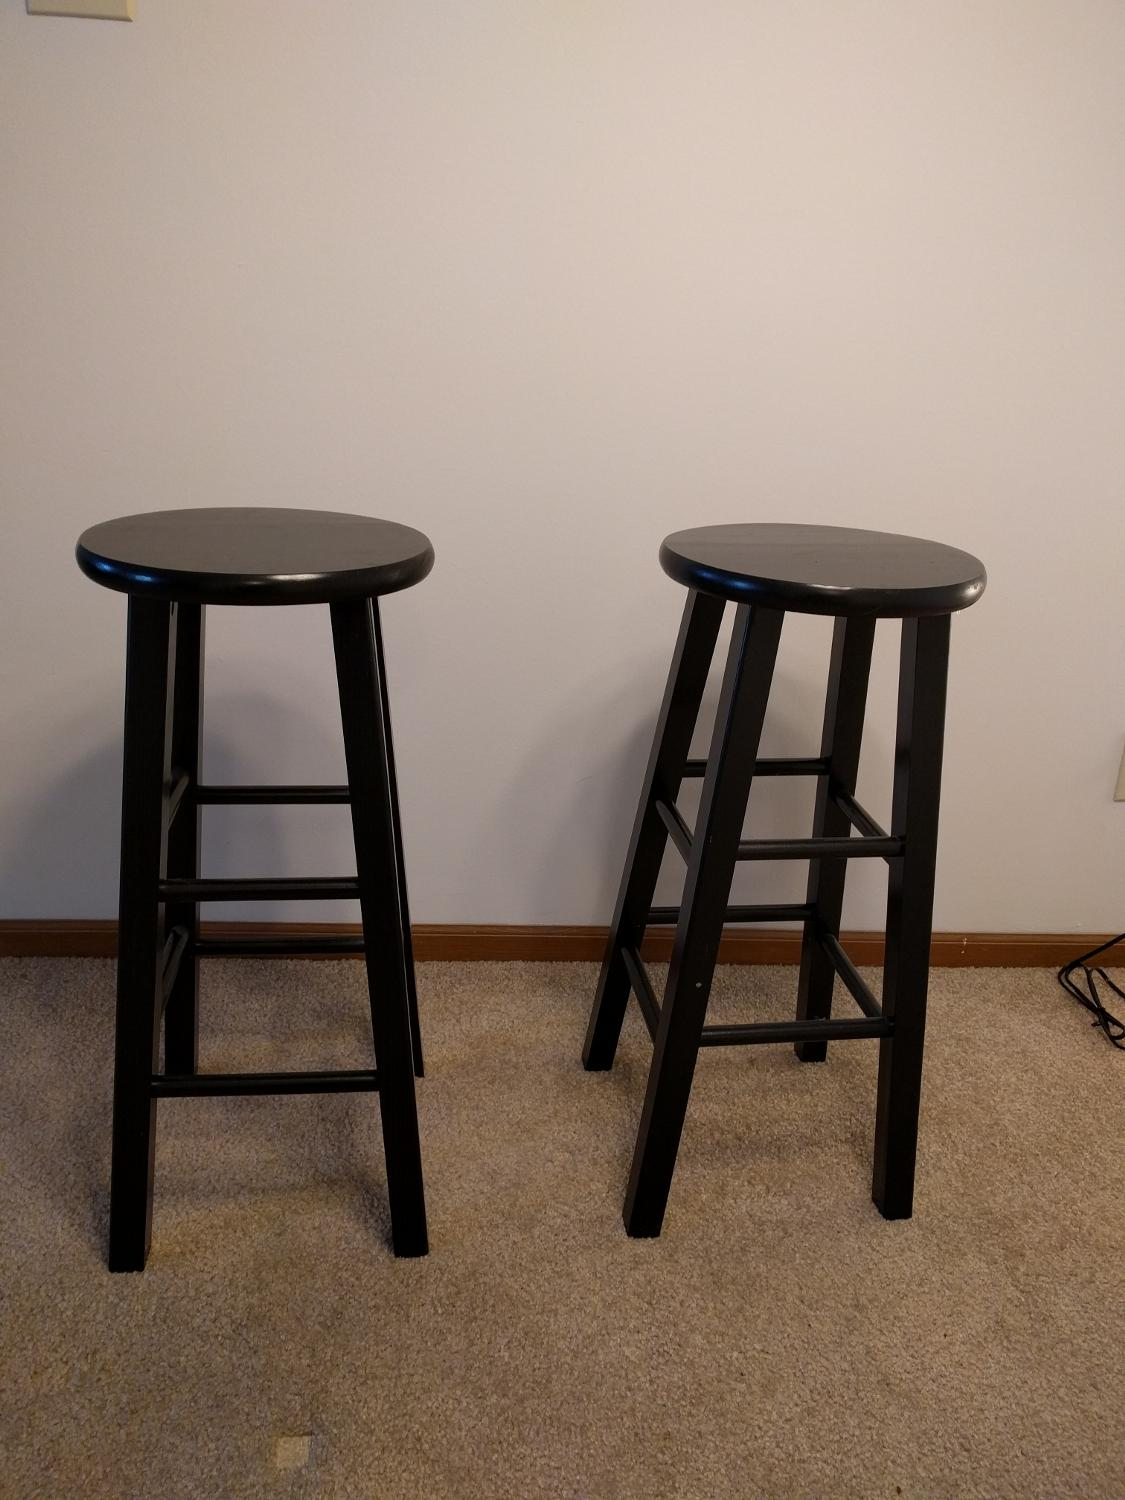 Best Bar Stool Set Of 2 For Sale In St Charles Missouri For 2018